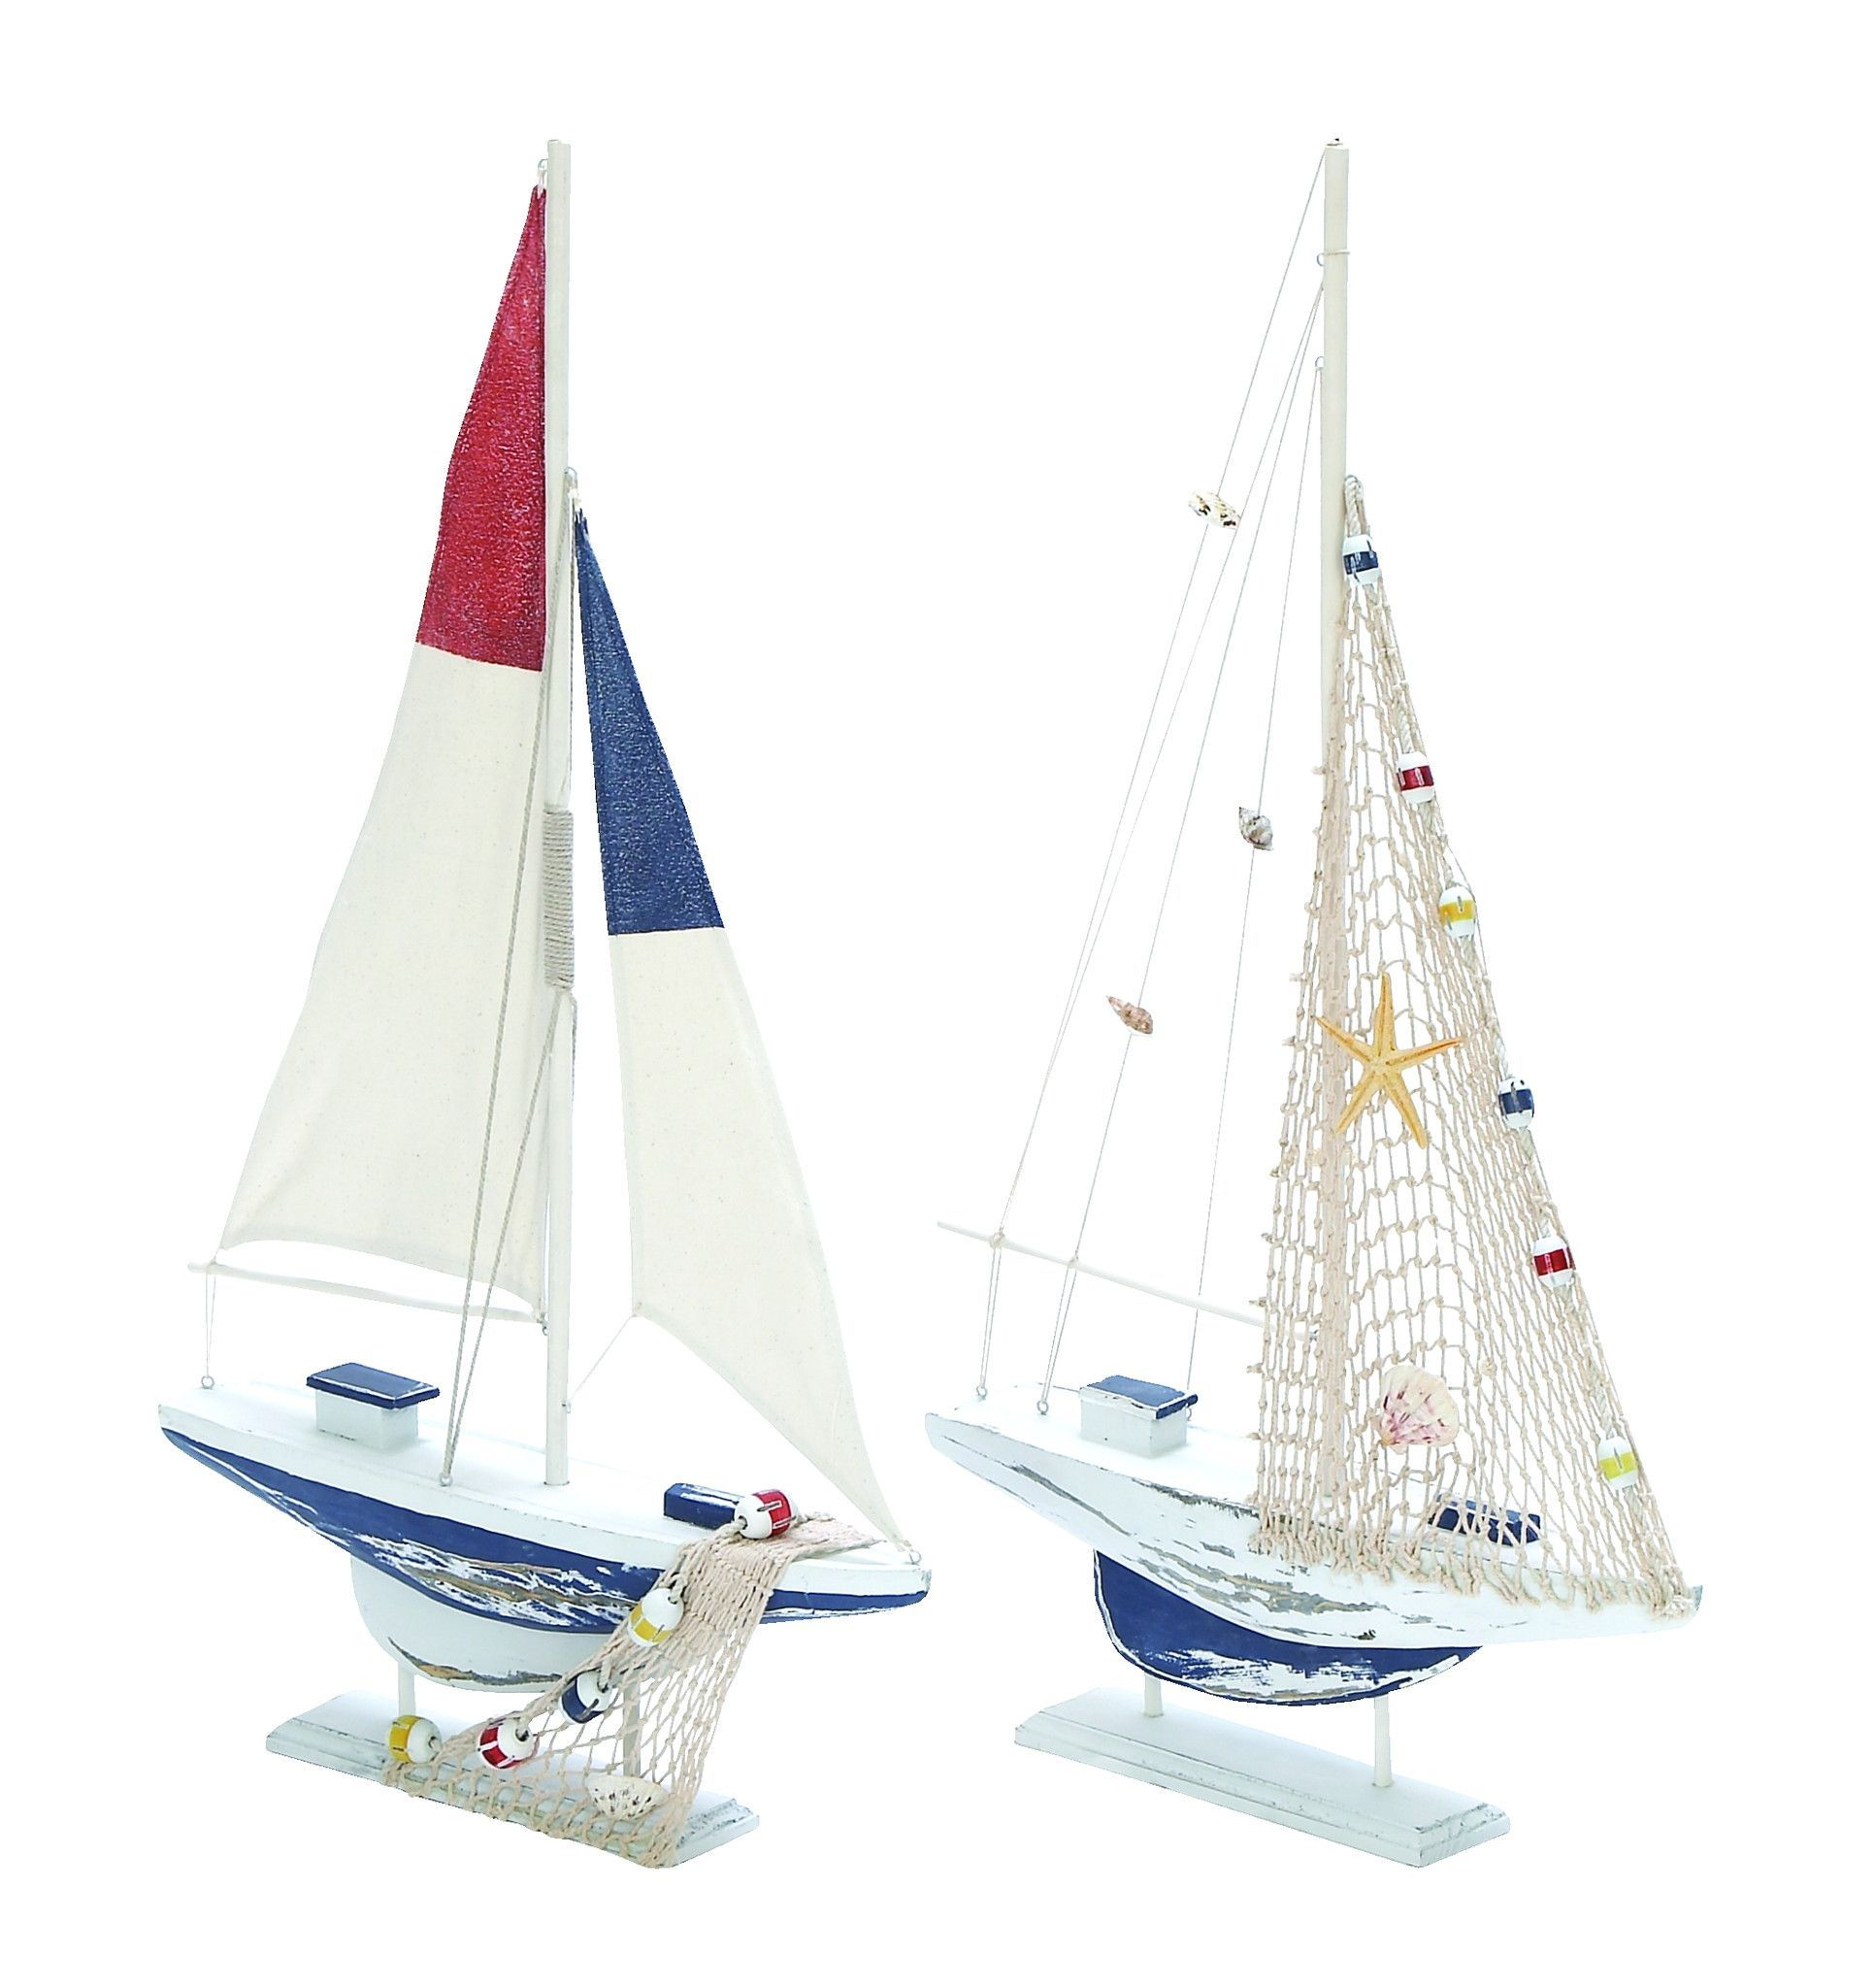 Assorted Wooden Sailing Boat In Red And Blue Finish - Set Of 2